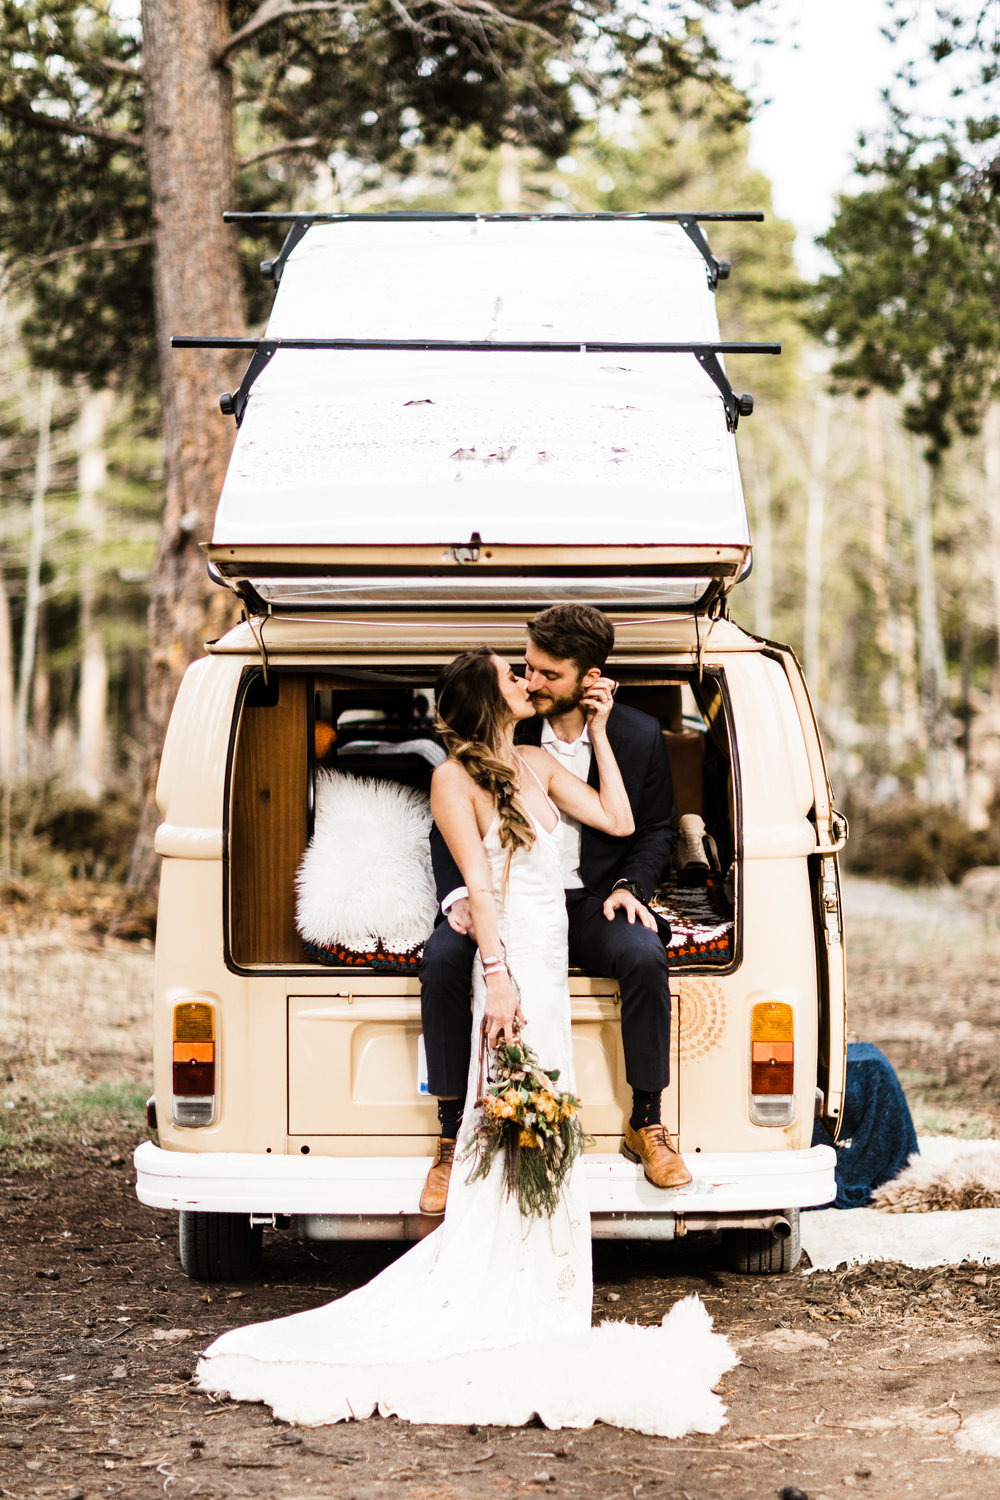 Rocky Mountain Camper Van Life Colorado Elopement | Colorado Adventure Wedding Photographers